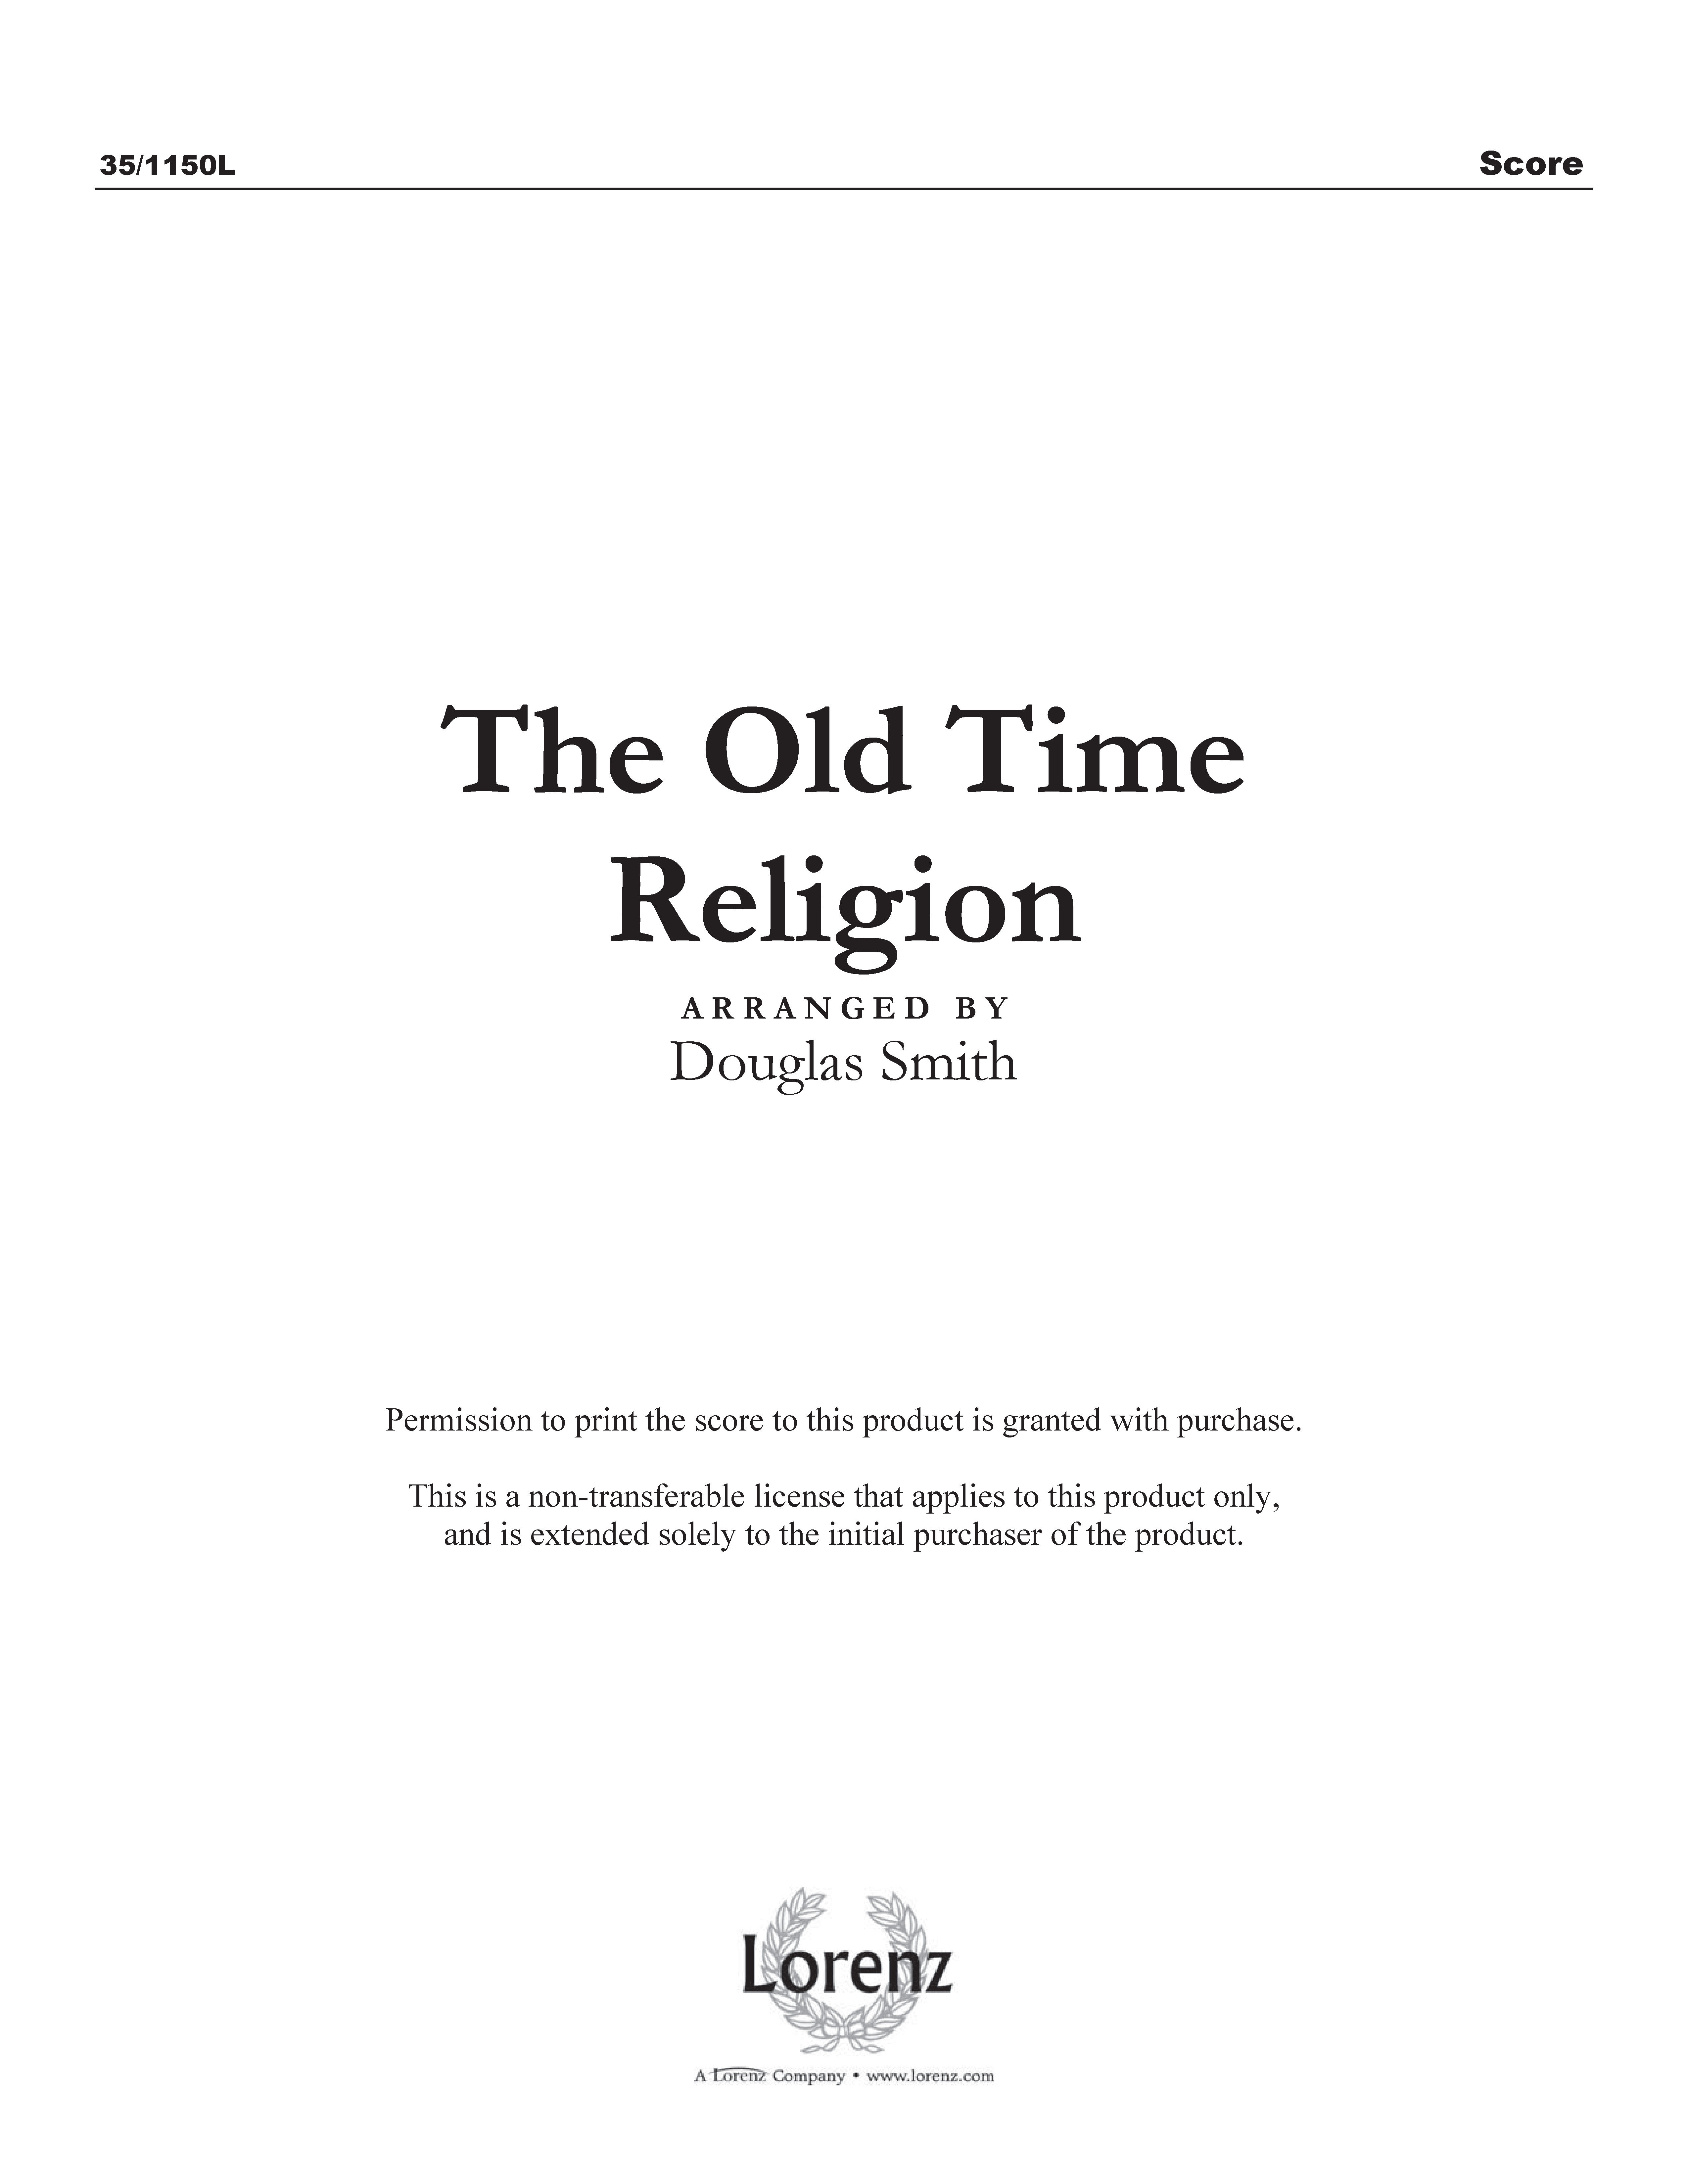 The Old Time Religion - Flute (Digital Delivery)